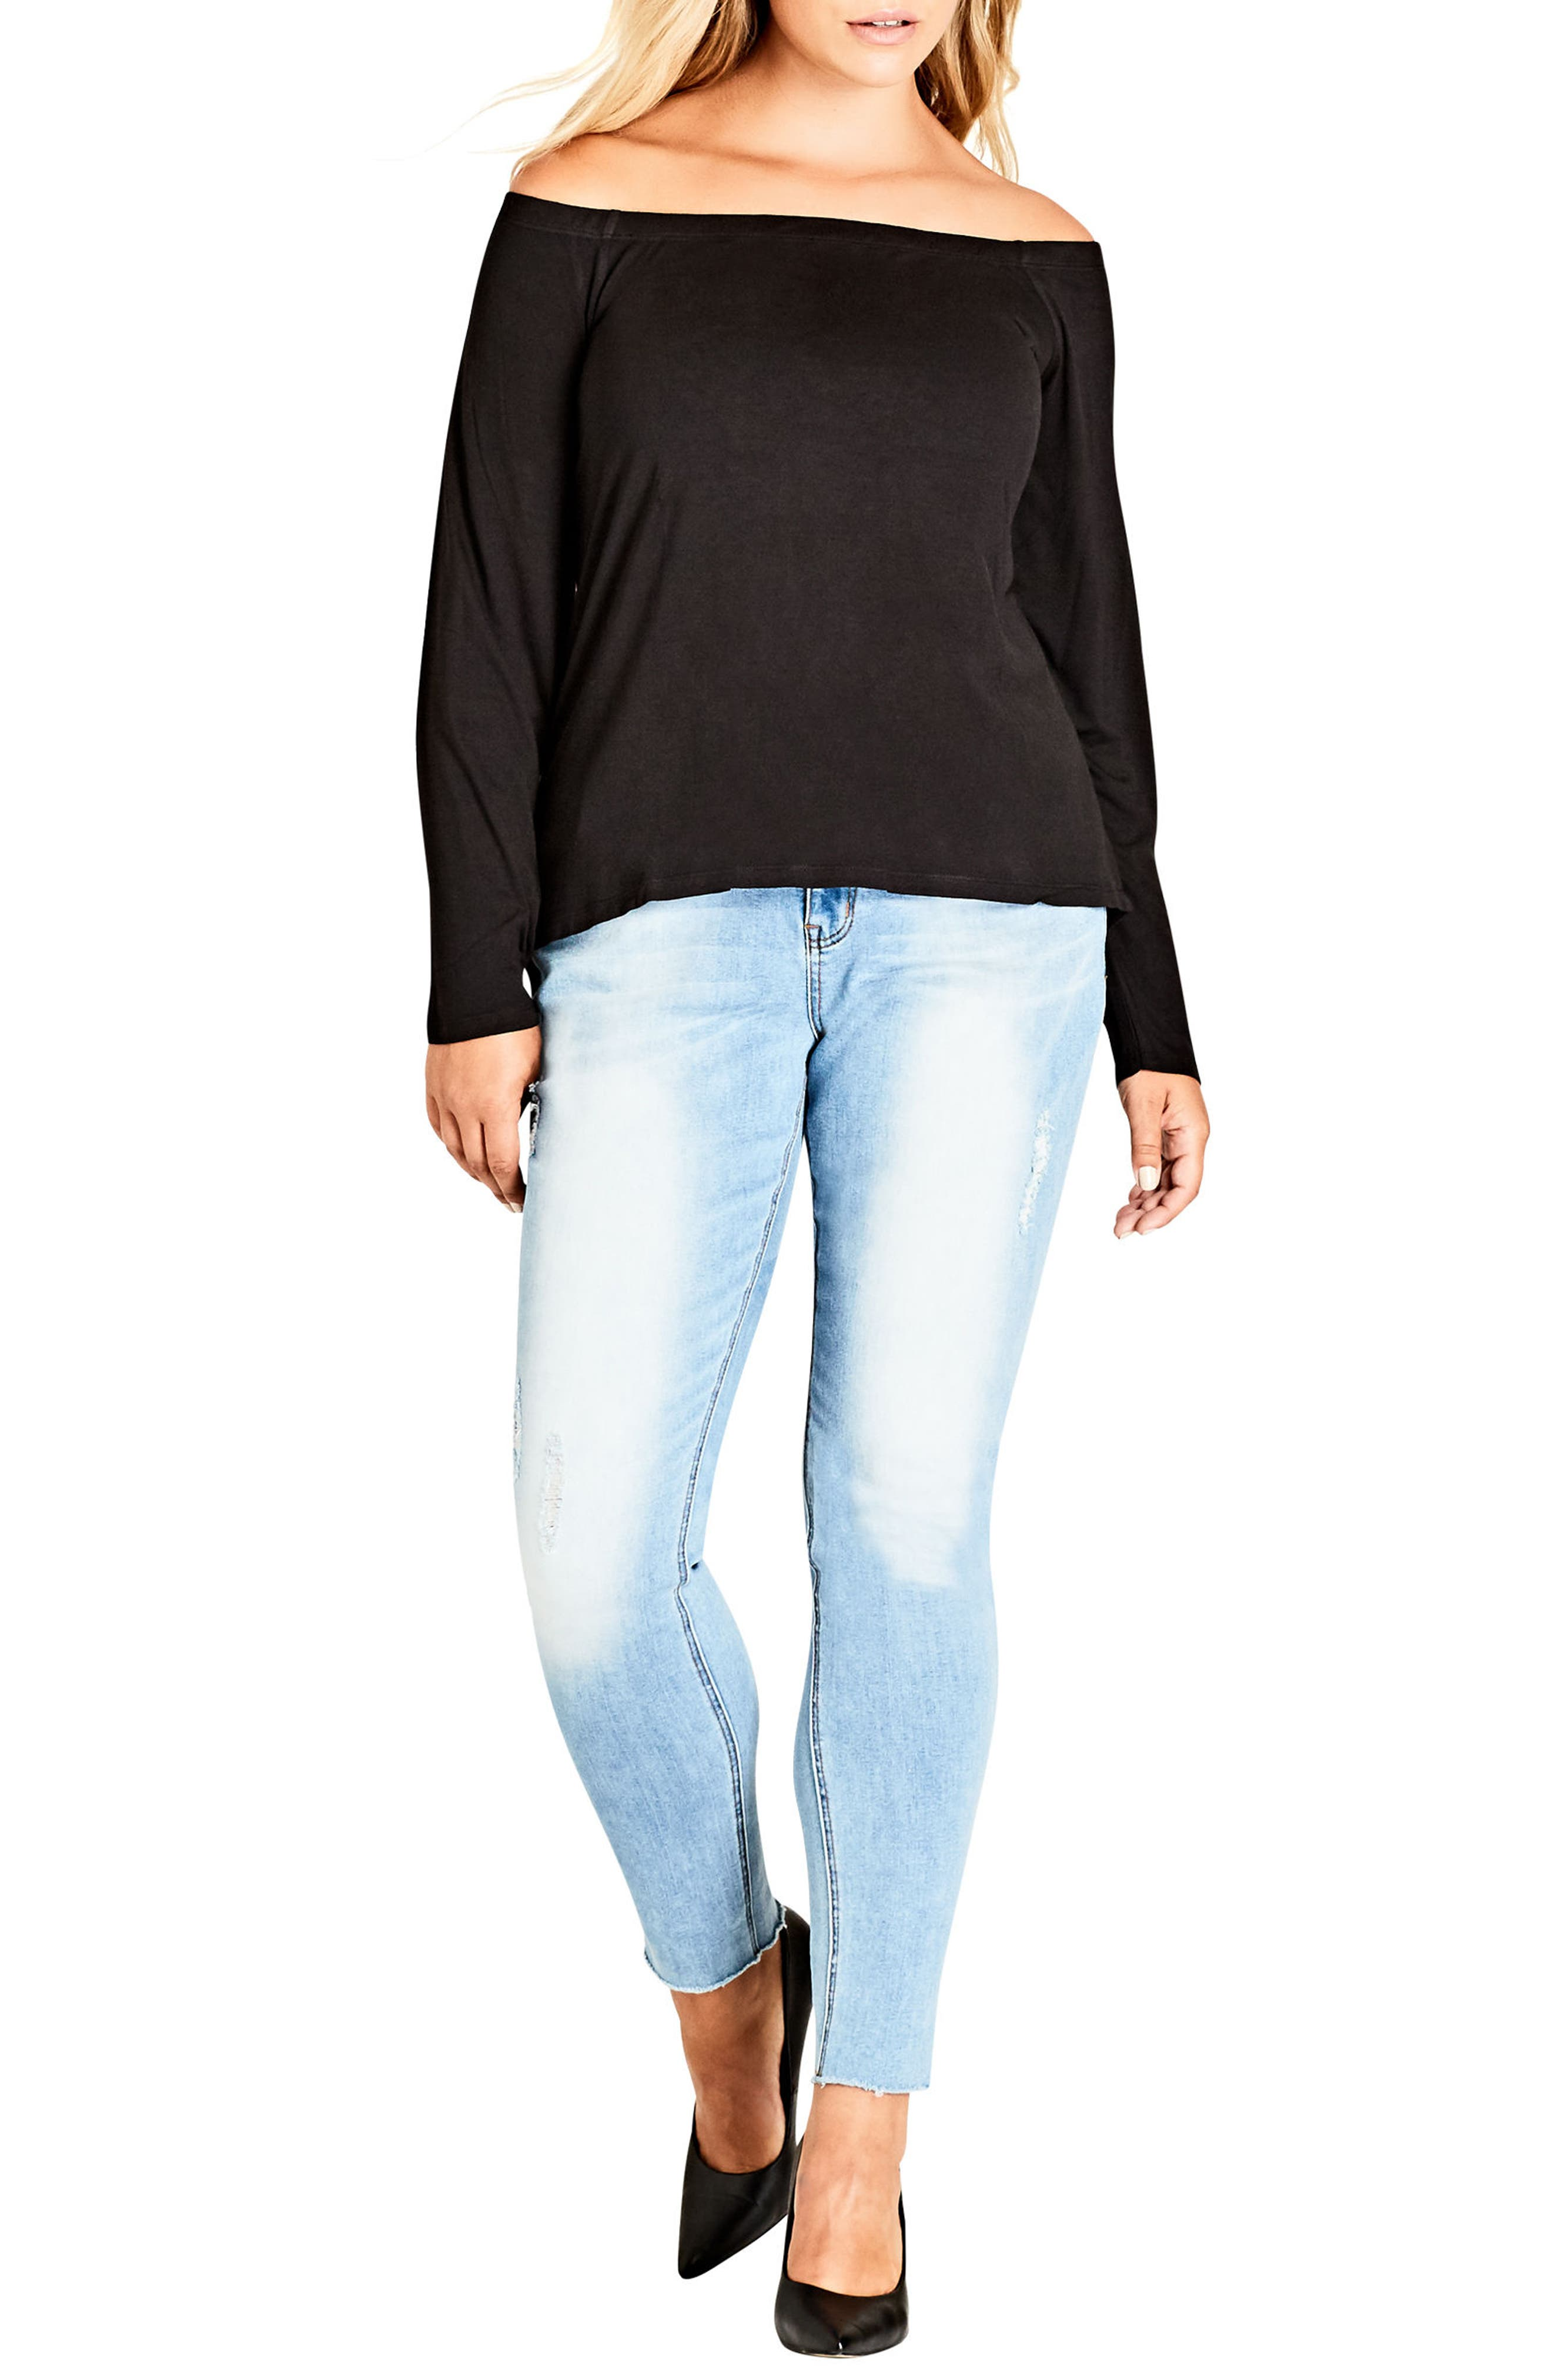 Alternate Image 1 Selected - City Chic Basic Off the Shoulder Top (Plus Size)